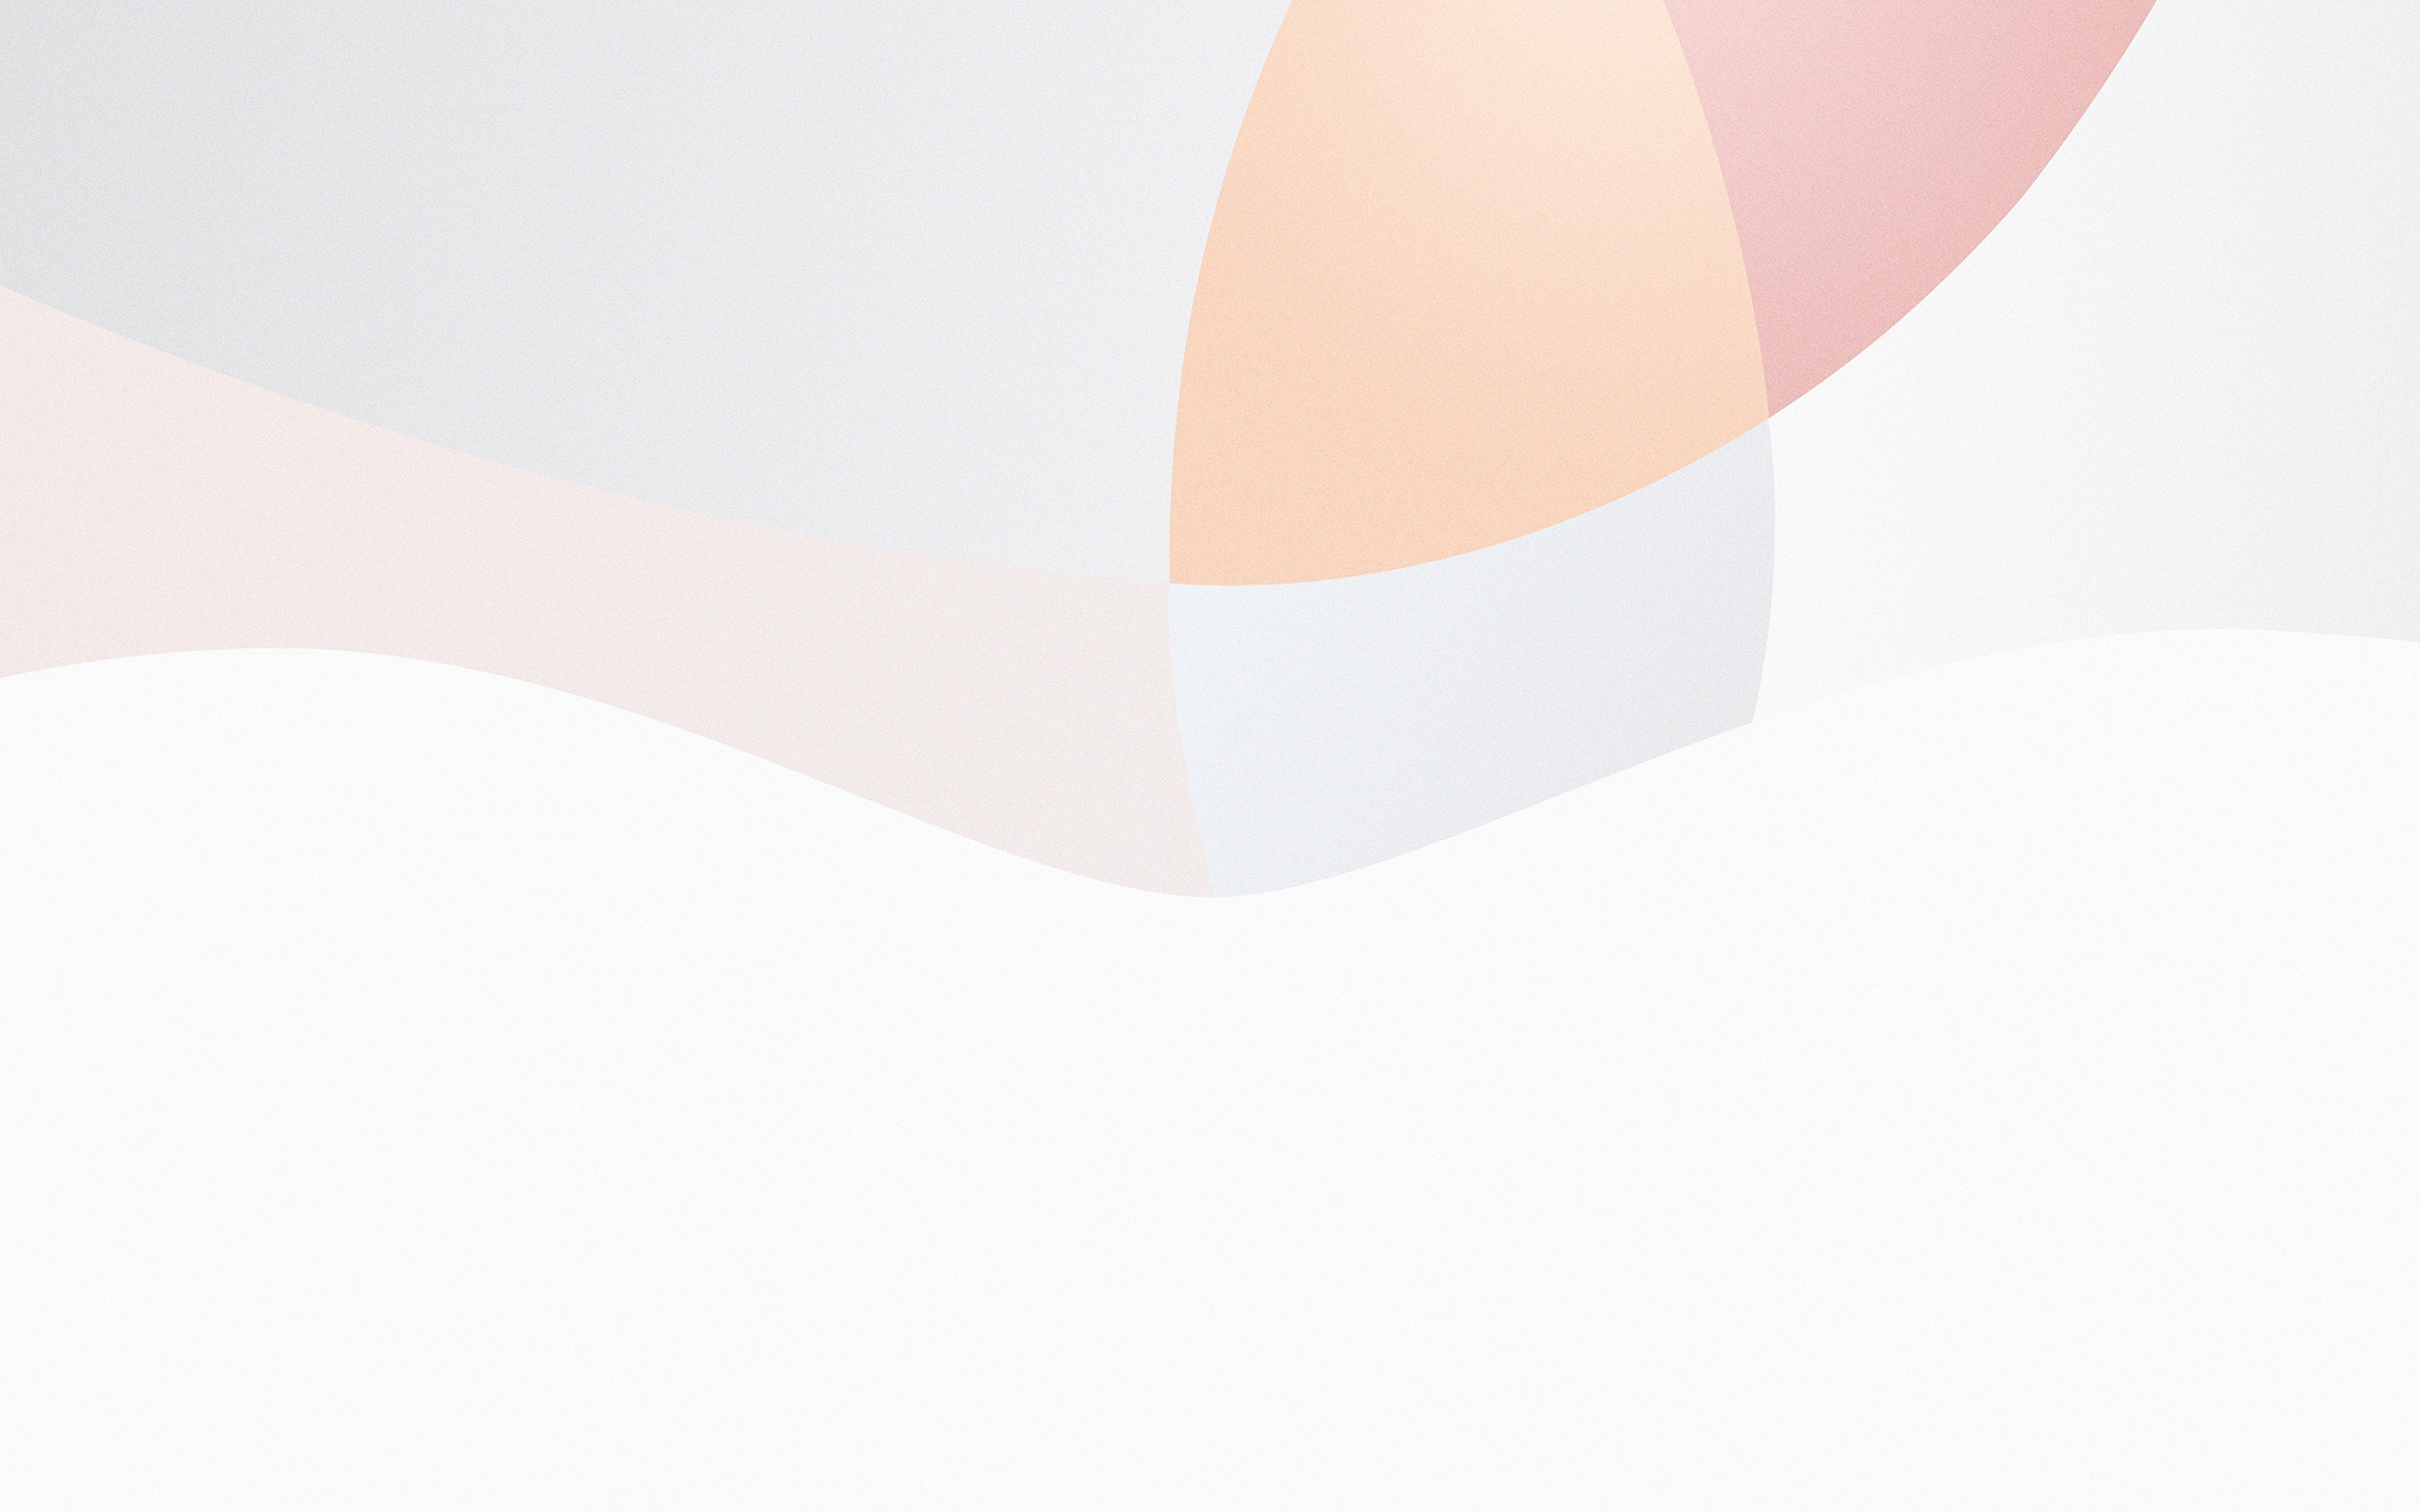 wallpaper for desktop, laptop | at43-apple-mac-white-logo ...